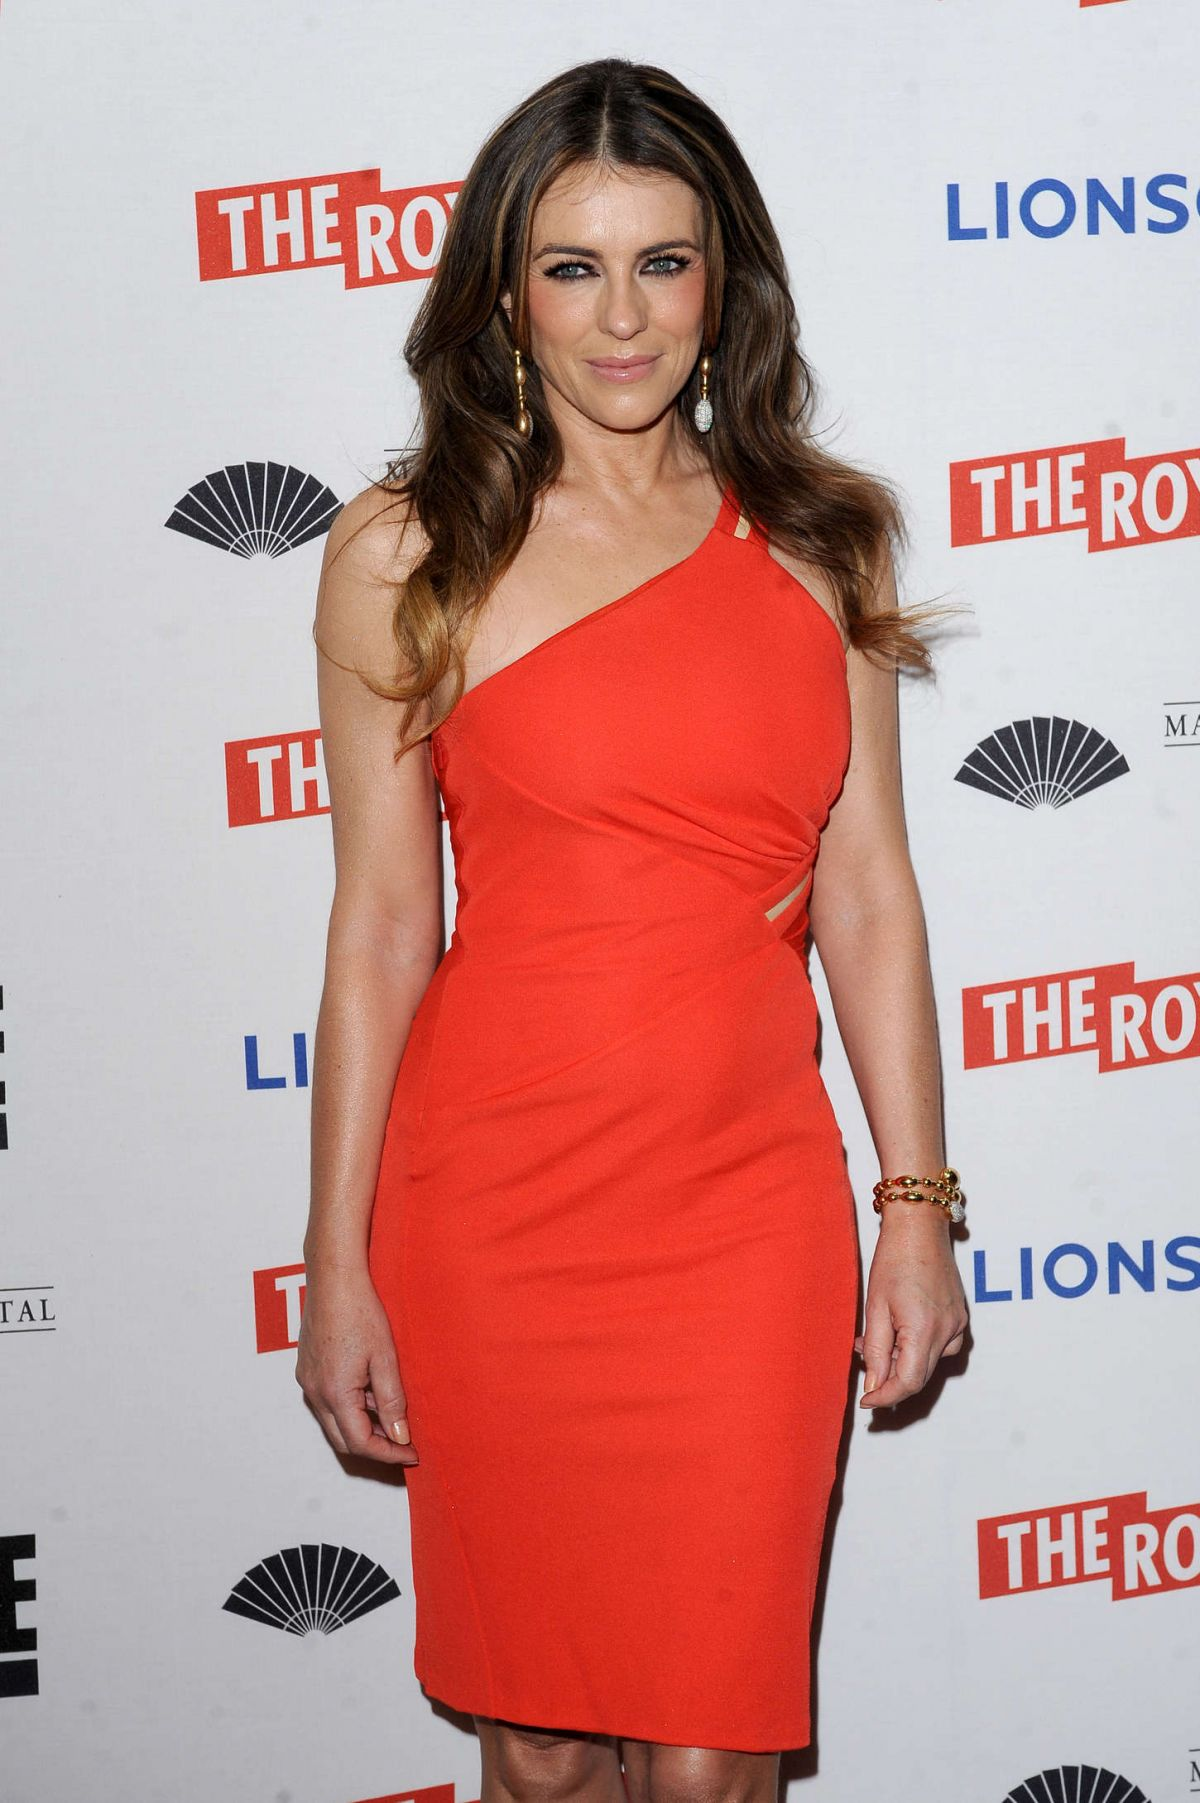 ELIZABETH HURLEY at The Royals Premiere in London